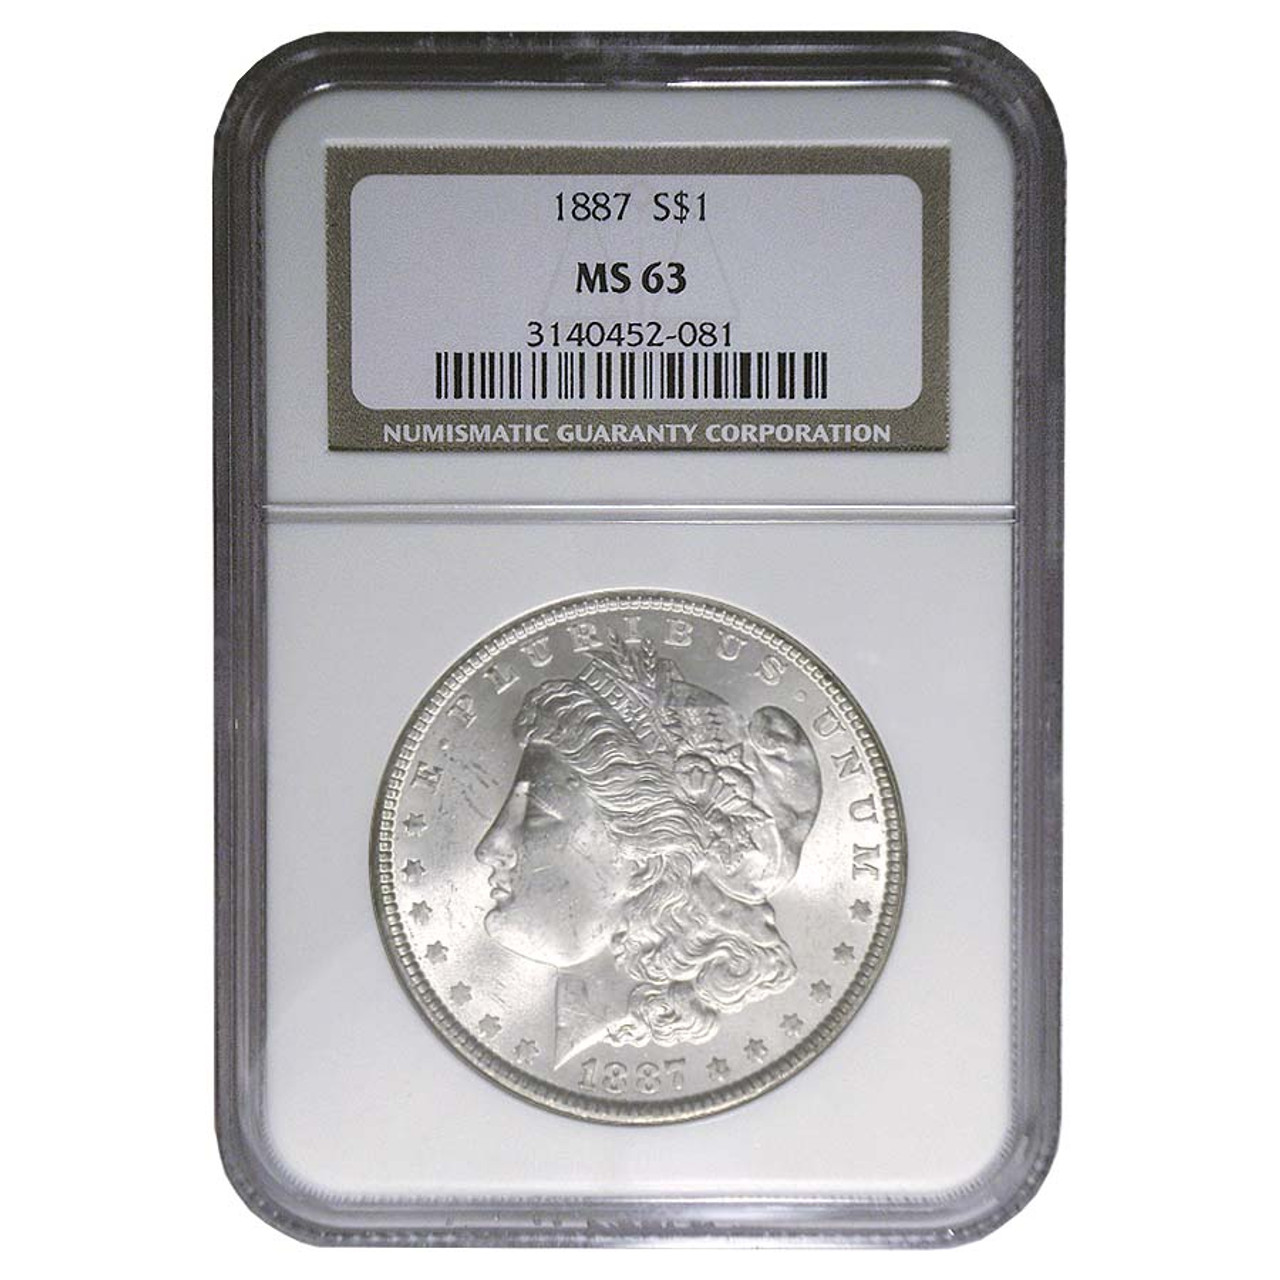 1887-P Morgan Silver Dollar Certified MS-63 Image 1